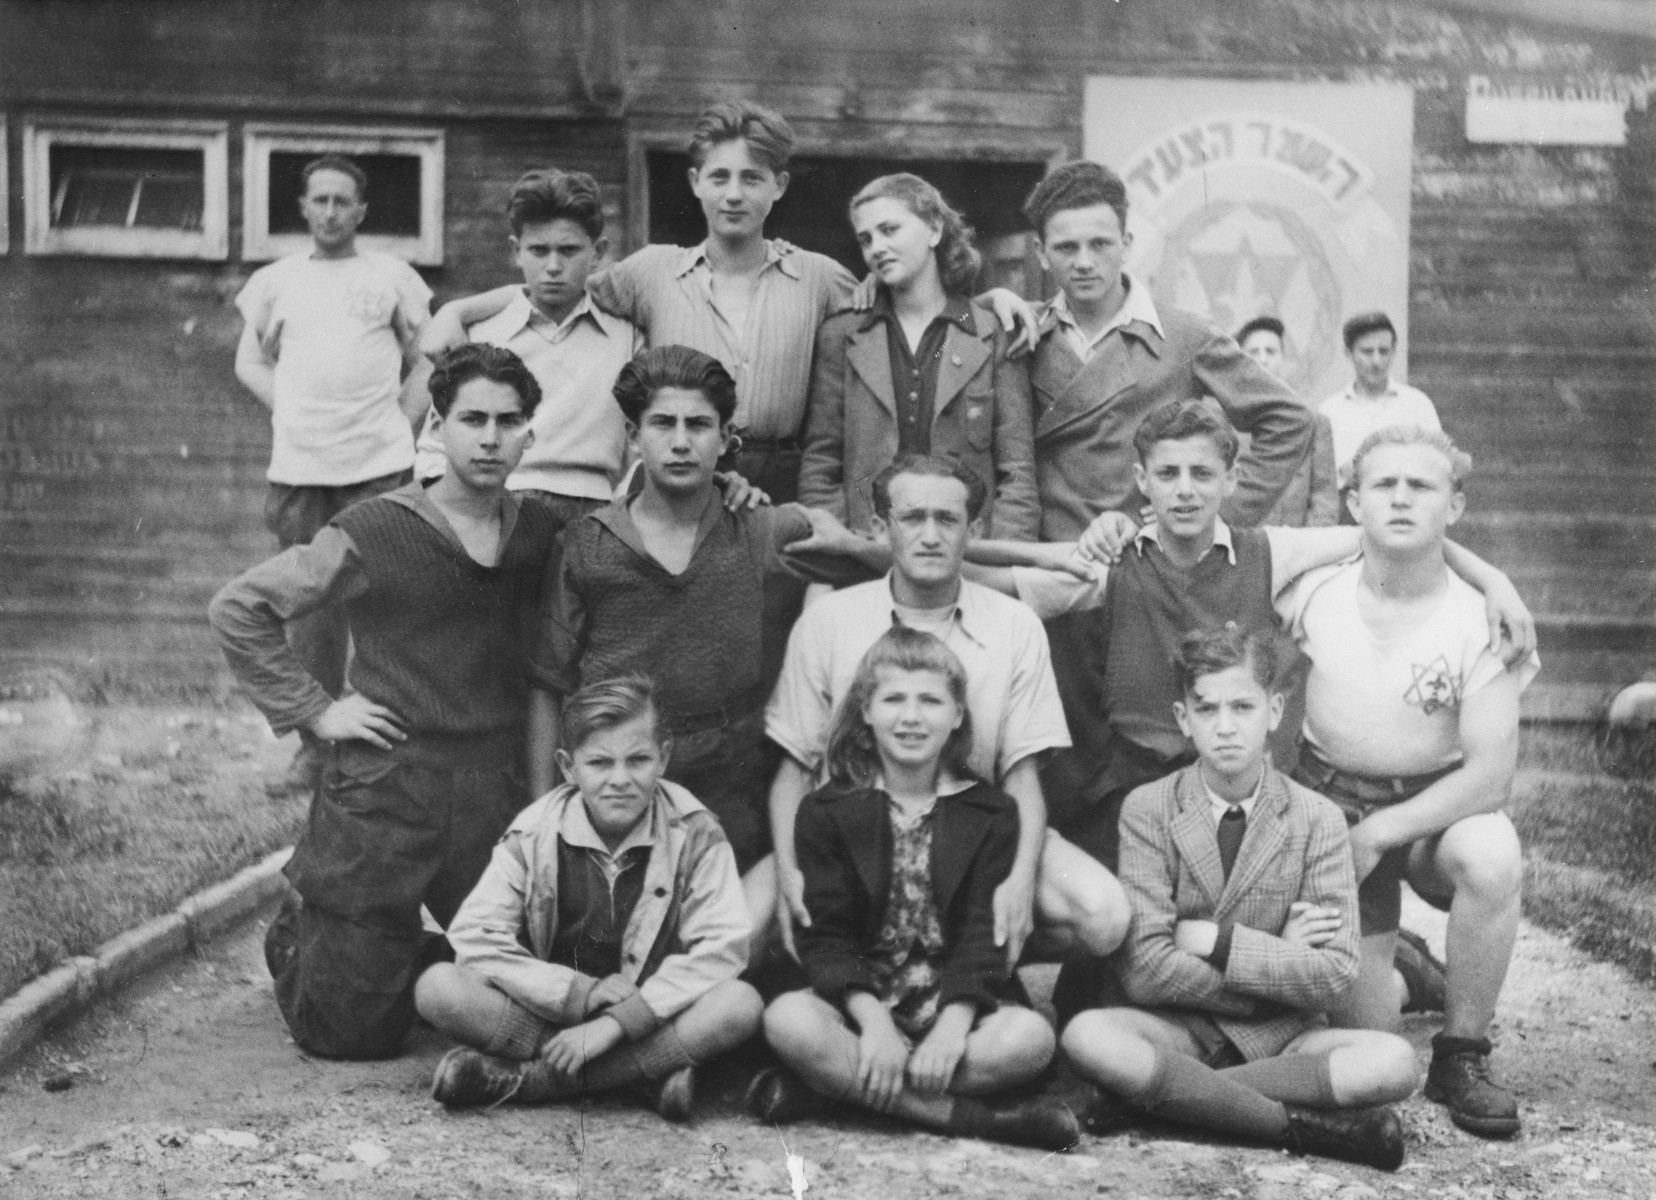 Young members of Hashomer Hatzair in a DP camp in Austria.  Standing in the center is Zoltan Farkas, to his left is Ahava and on the far right is Yosi Berger.